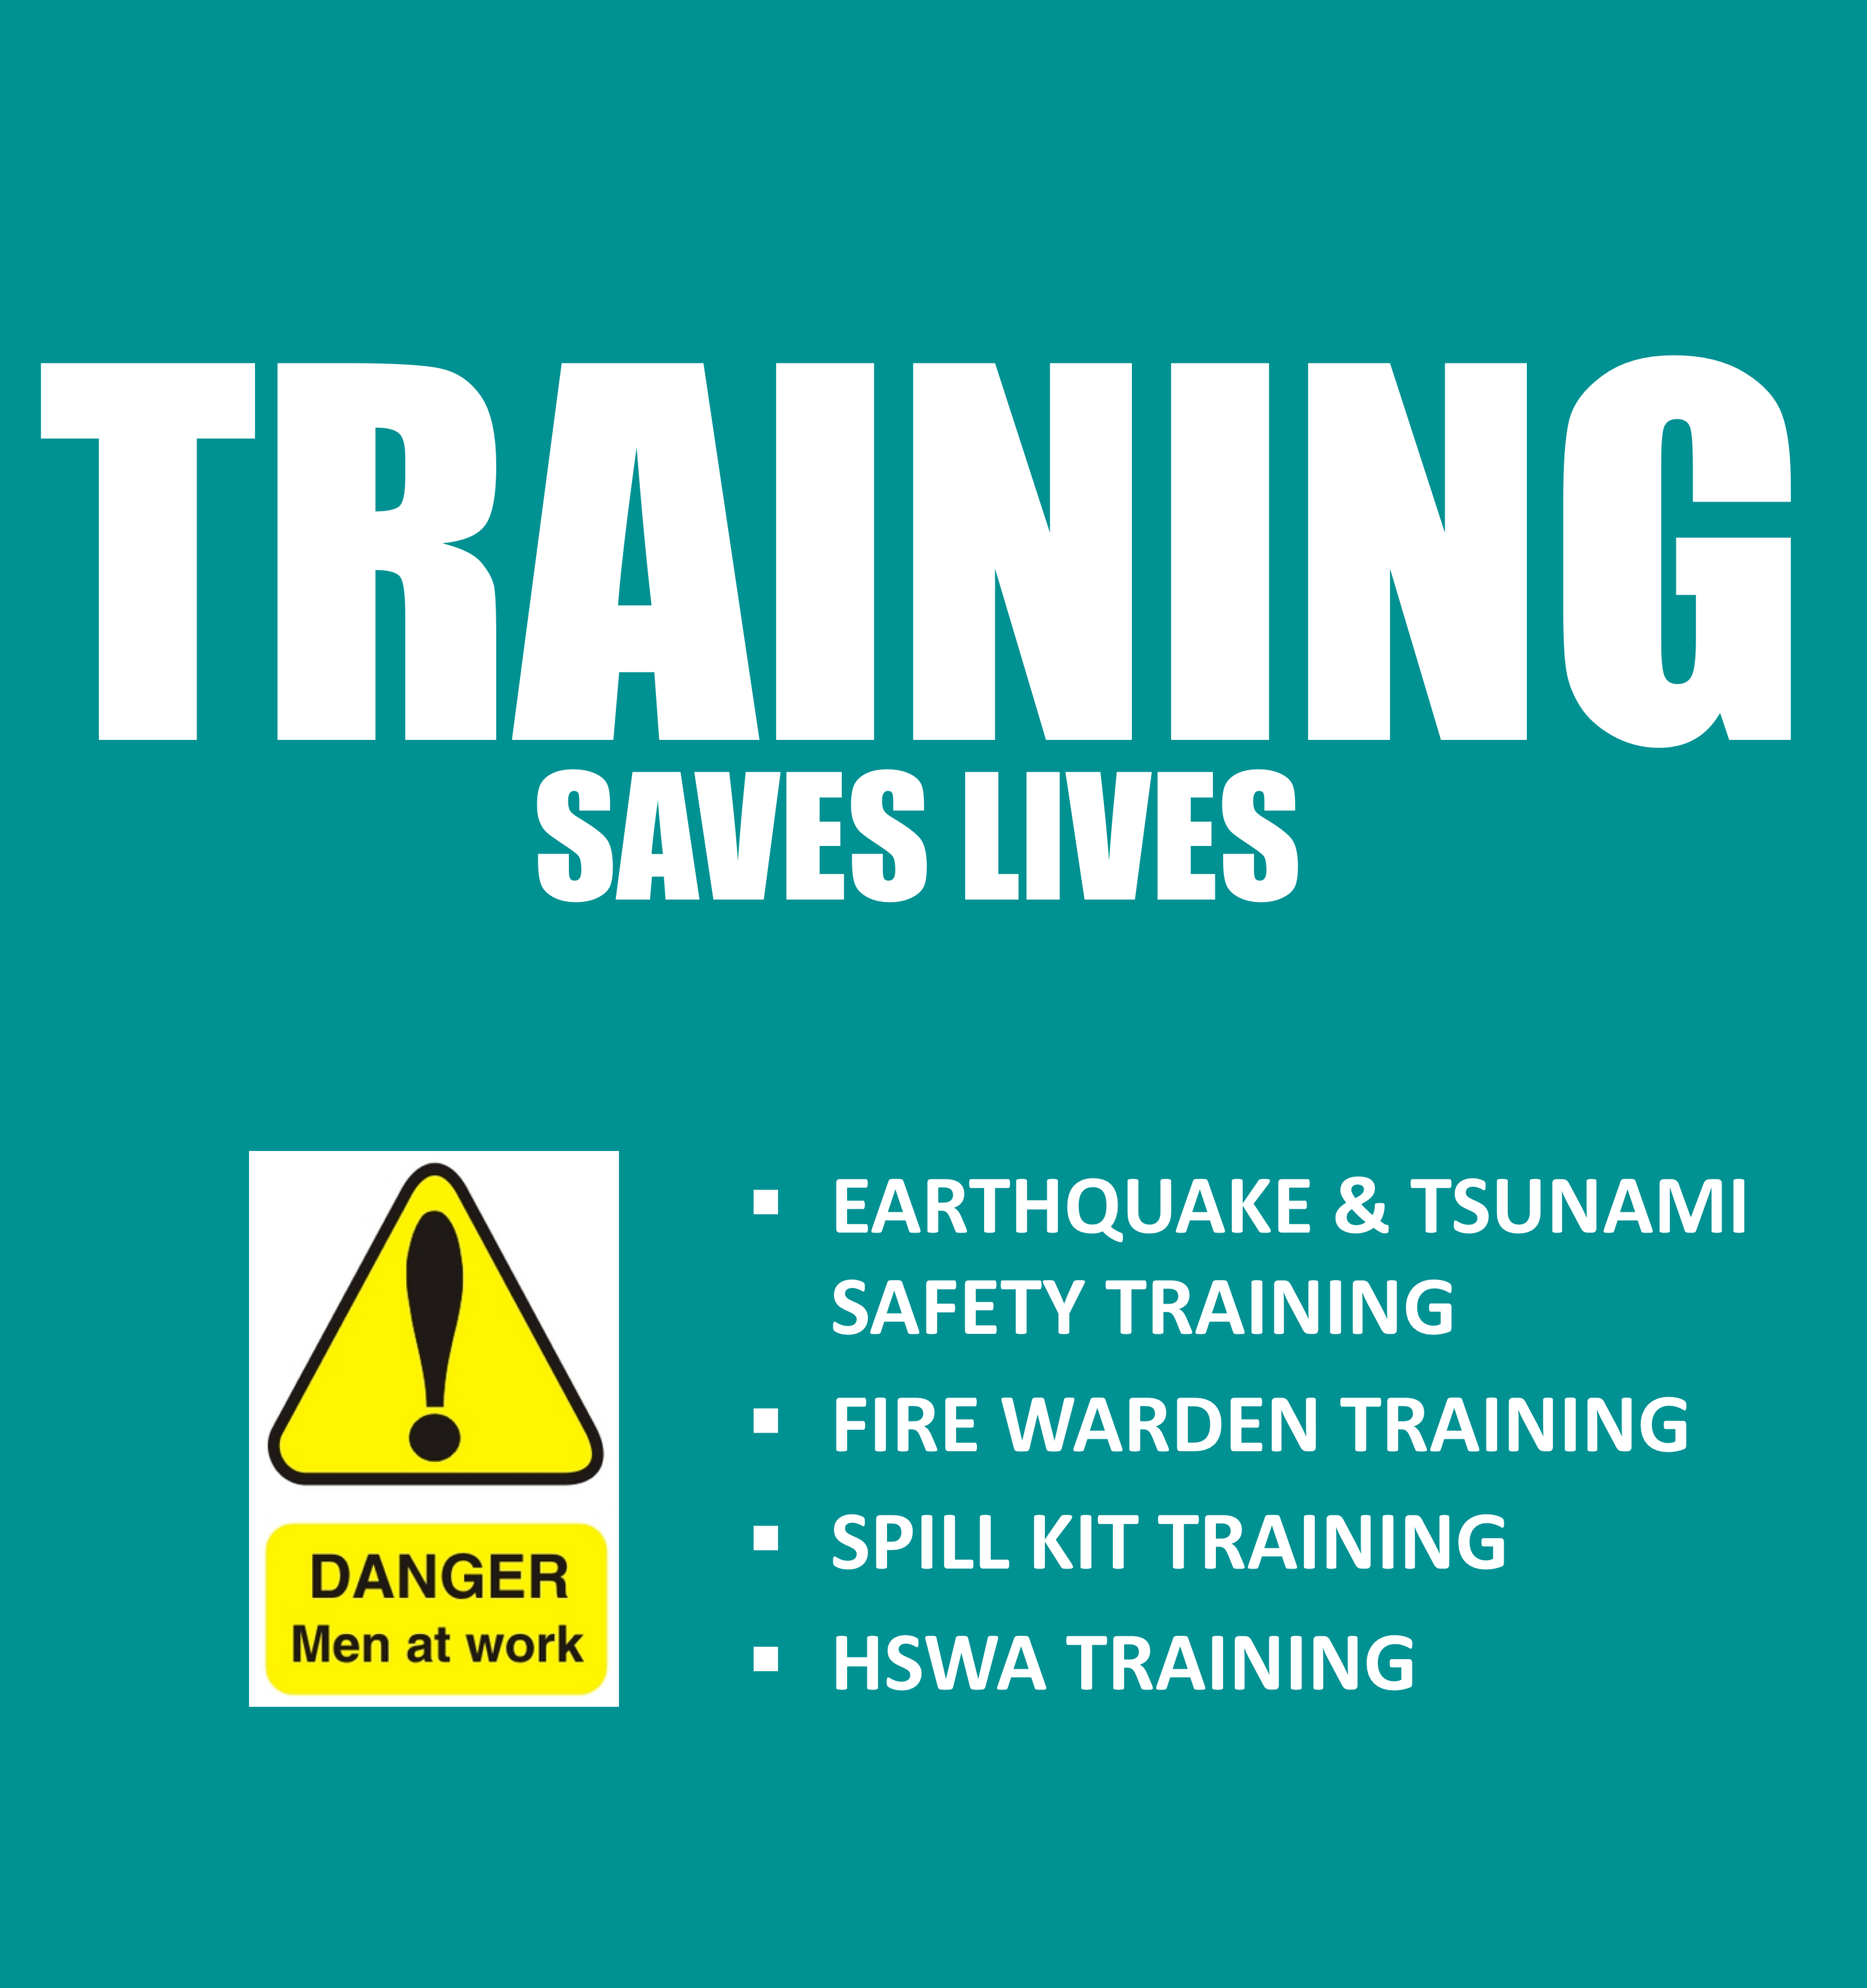 Earthquake & Tsunami Safety Training, Fire Warden Training, Spill Kit Training, HSWA Training